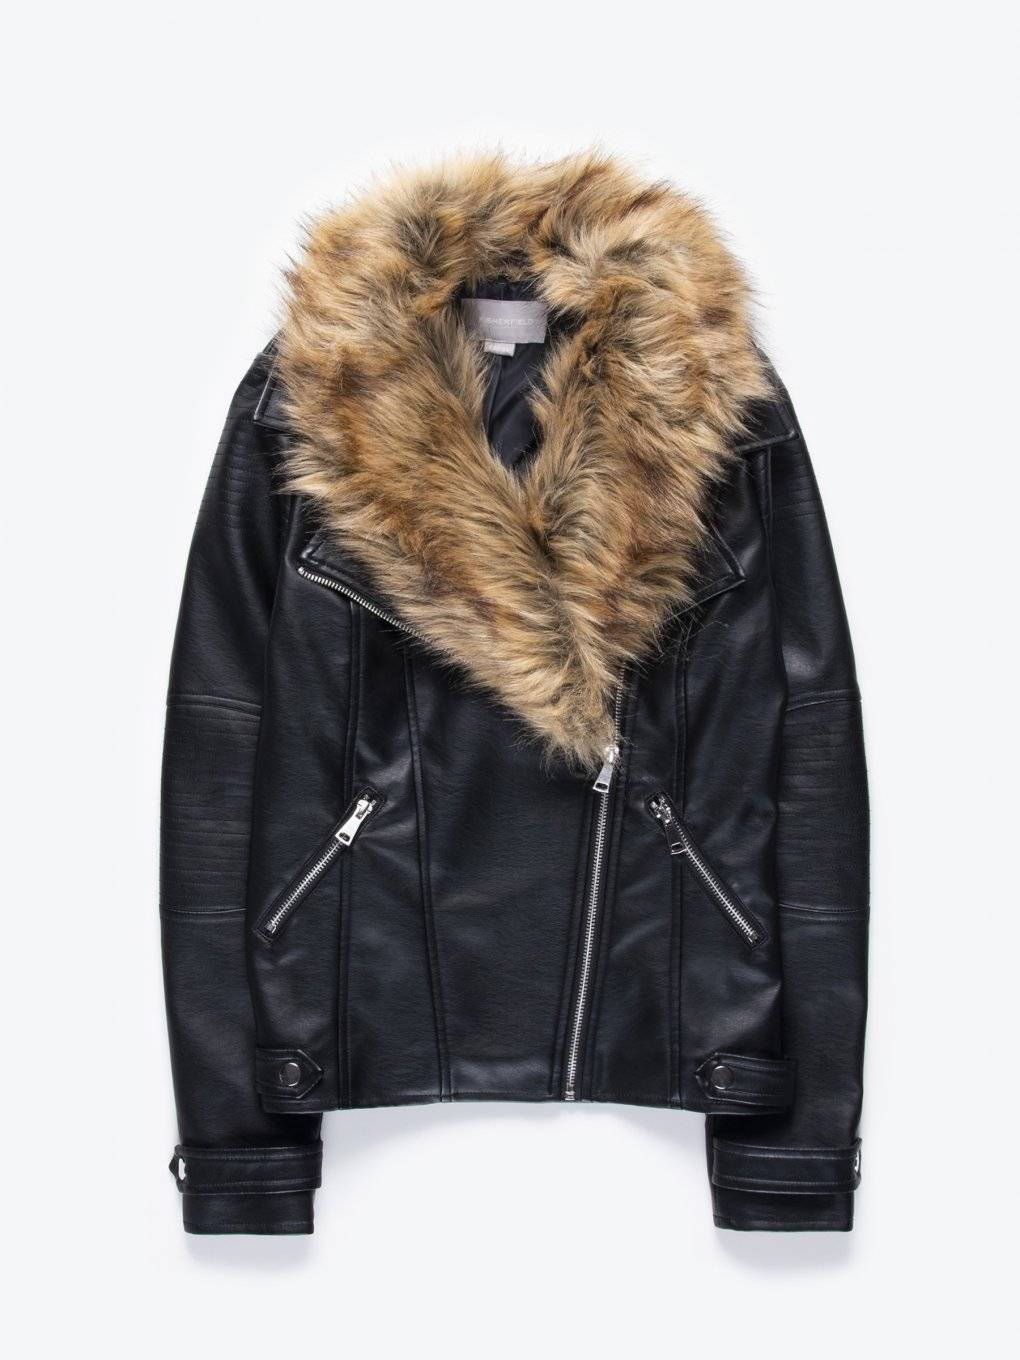 Faux leather biker jacket with removable faux fur